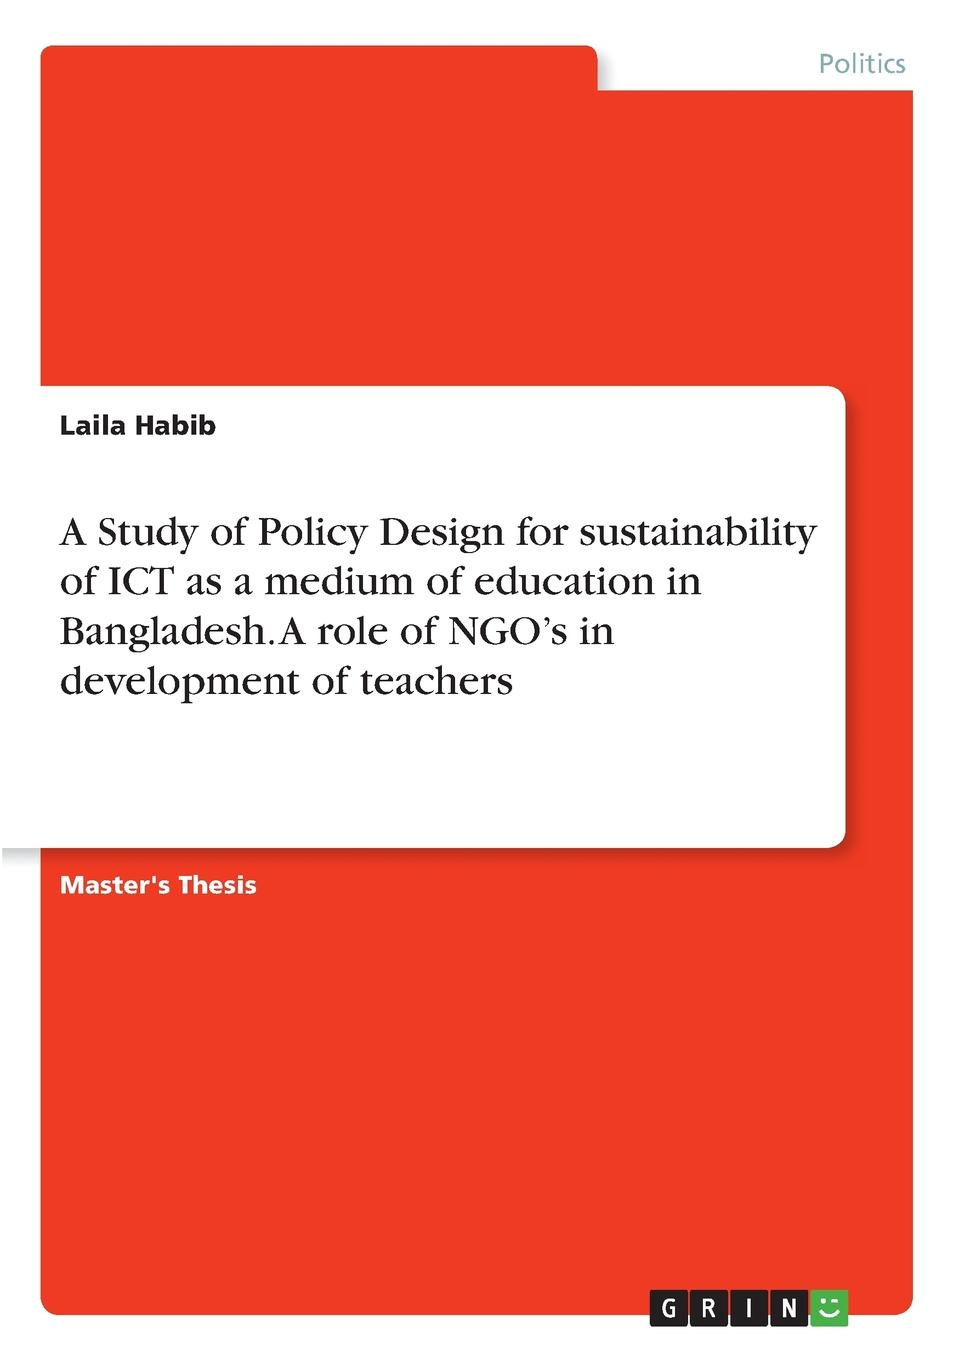 Laila Habib A Study of Policy Design for sustainability of ICT as a medium of education in Bangladesh. A role of NGO.s in development of teachers laila habib a study of policy design for sustainability of ict as a medium of education in bangladesh a role of ngo s in development of teachers